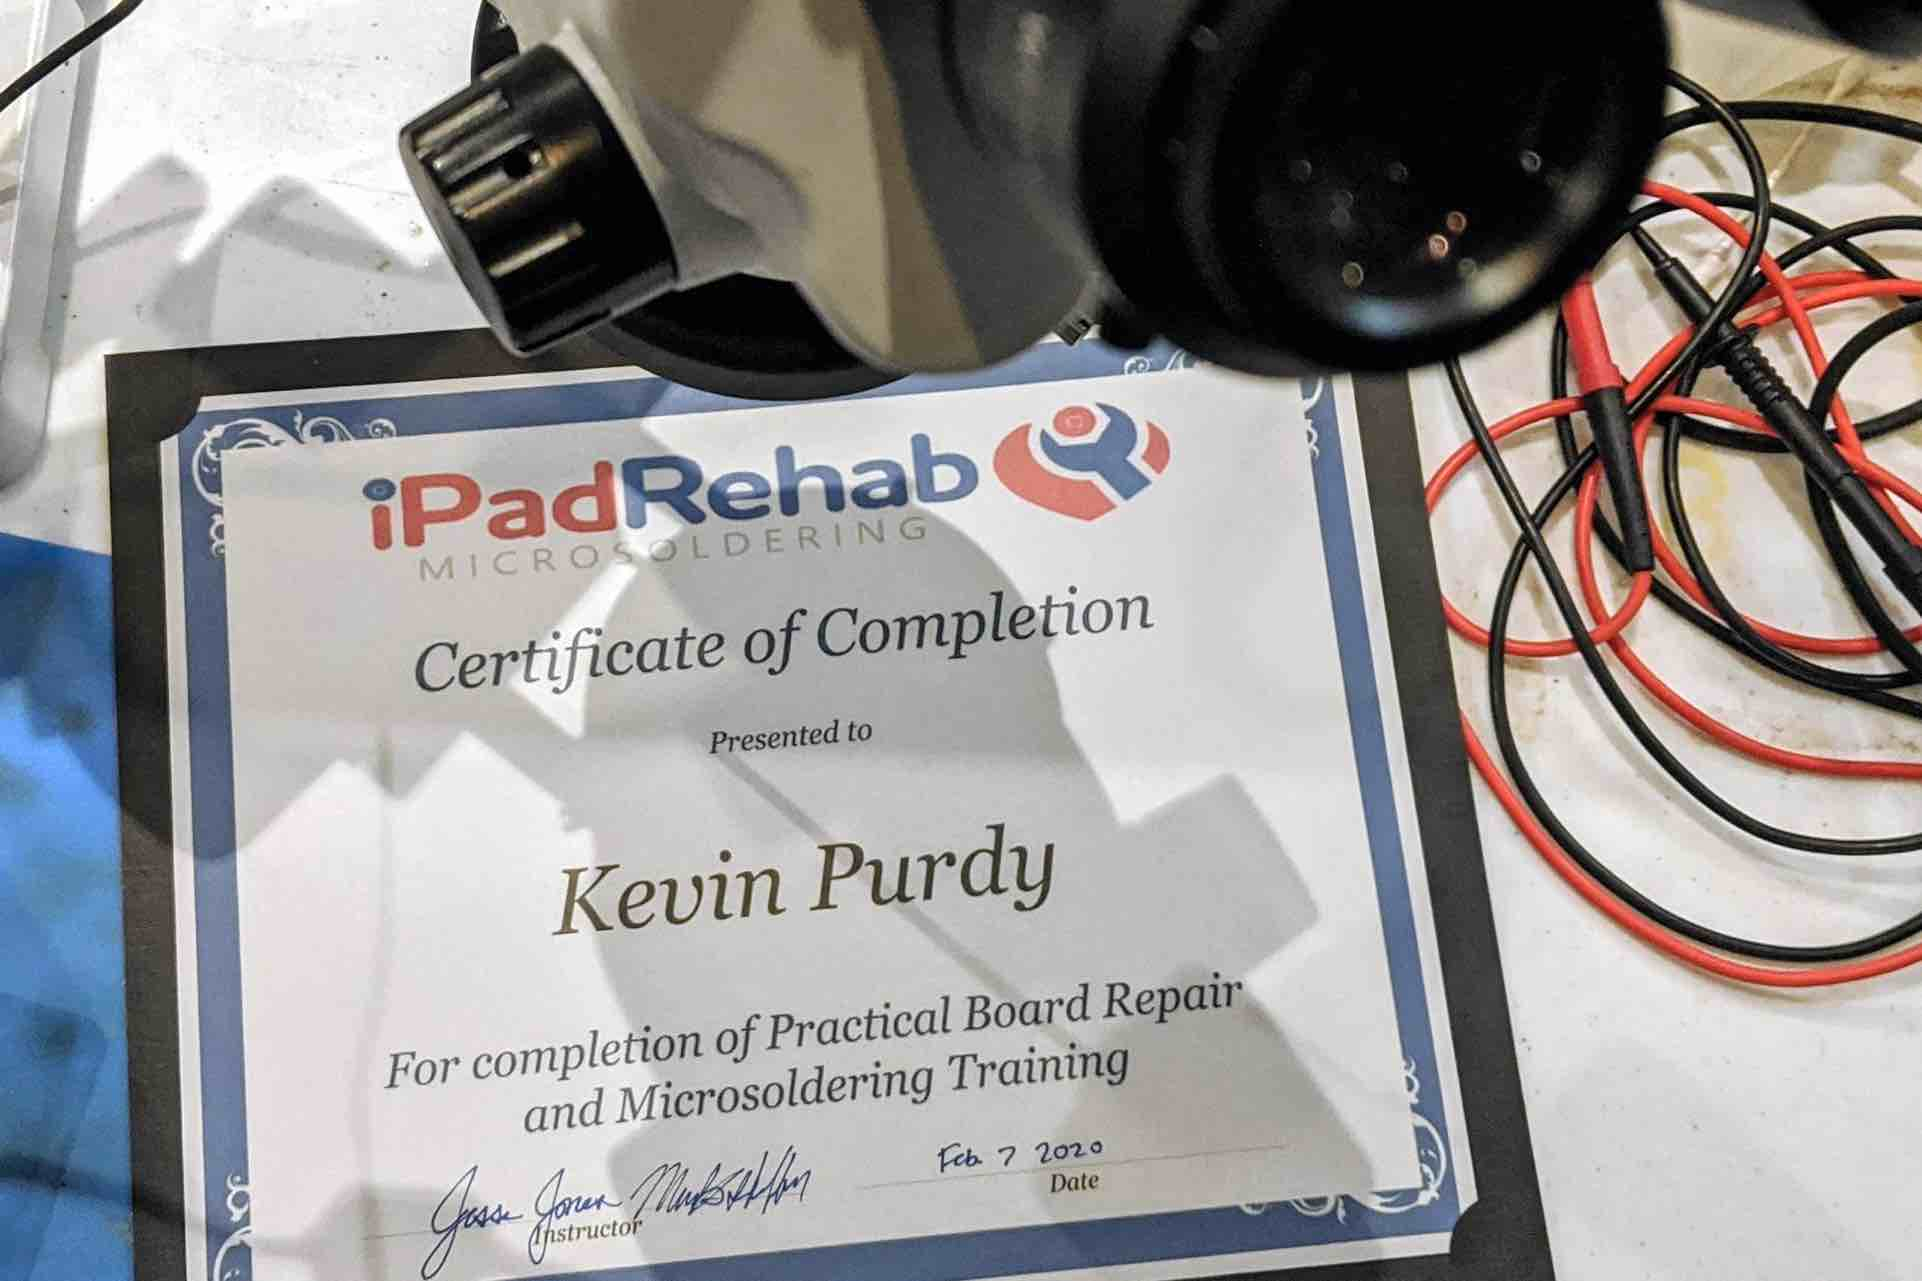 Certificate of Completion from iPad Rehab microsoldering course